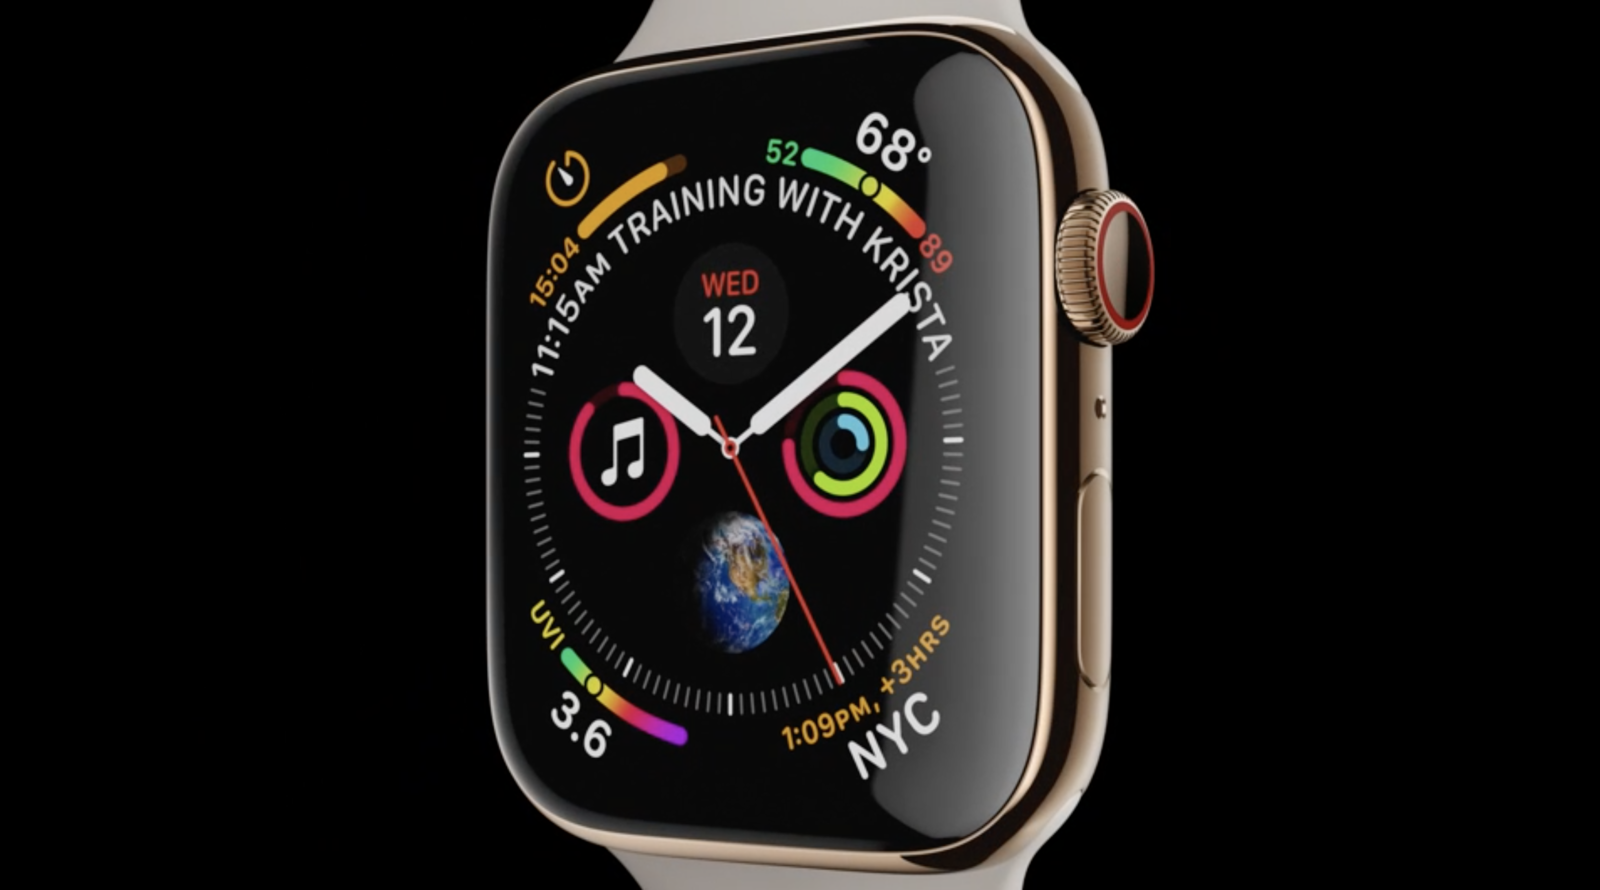 Apple's New Watch Detects Falls, Face-Plants And Heart Irregularities